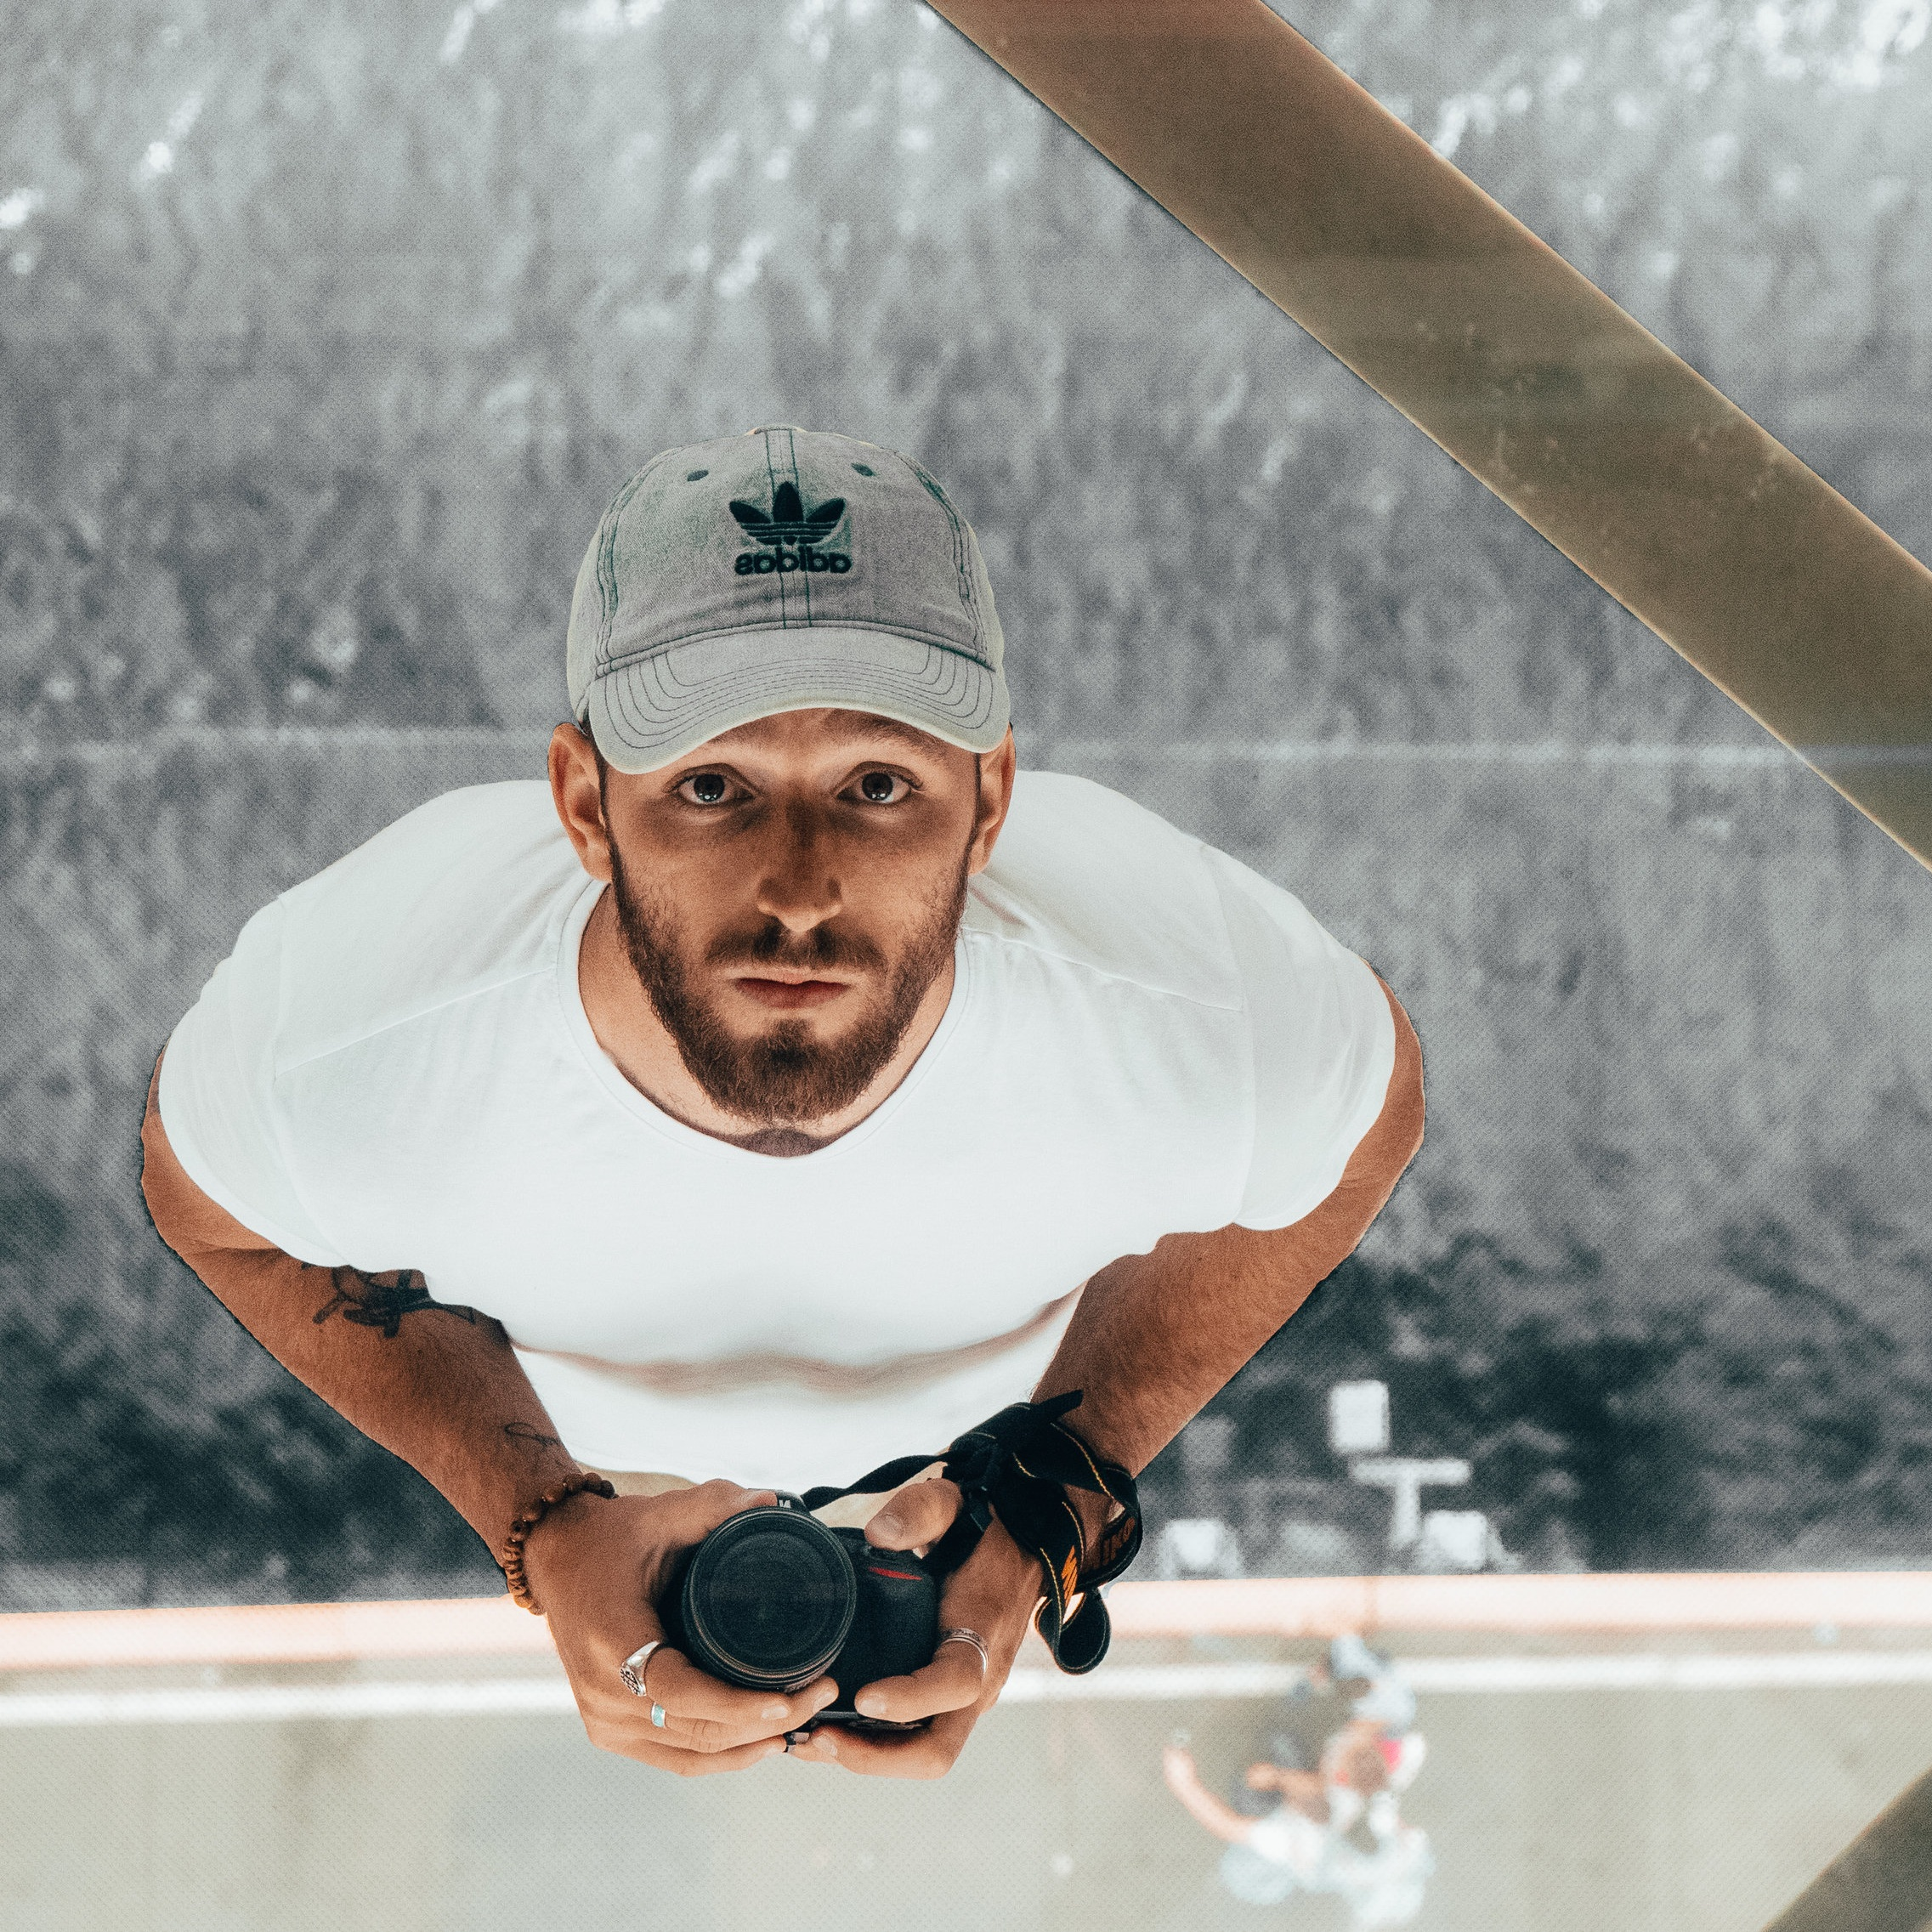 James Schneebeck - i'm a videographer & graphic artist who tricked all of my former & current employers into paying me to play with my camera. my day job is as a video producer at a startup in Boulder, CO.